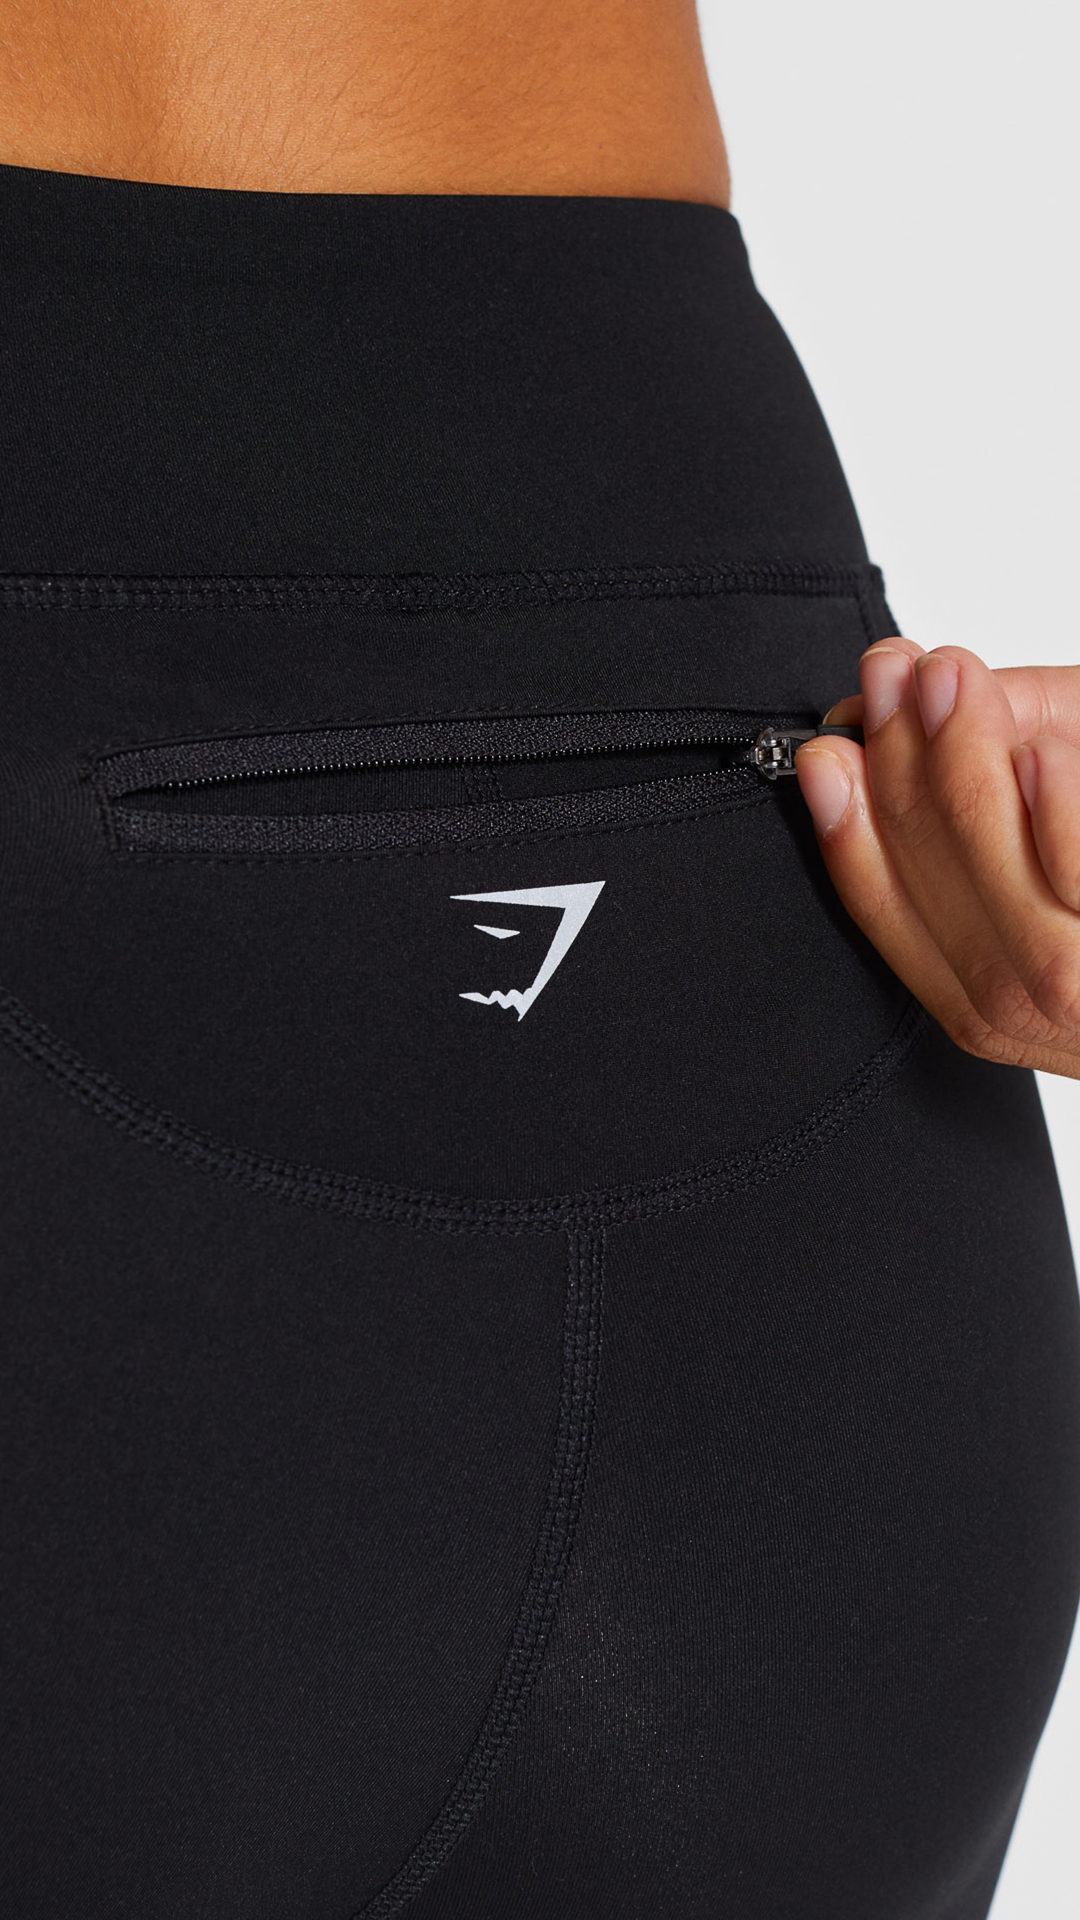 6ecc07e418d920 The Pace Running Legging offers a back pocket for ease and convenience. # Gymshark #Leggings #Tights #Pants #Comfort #Fitness #Workout #Girls #Womens  #Sport